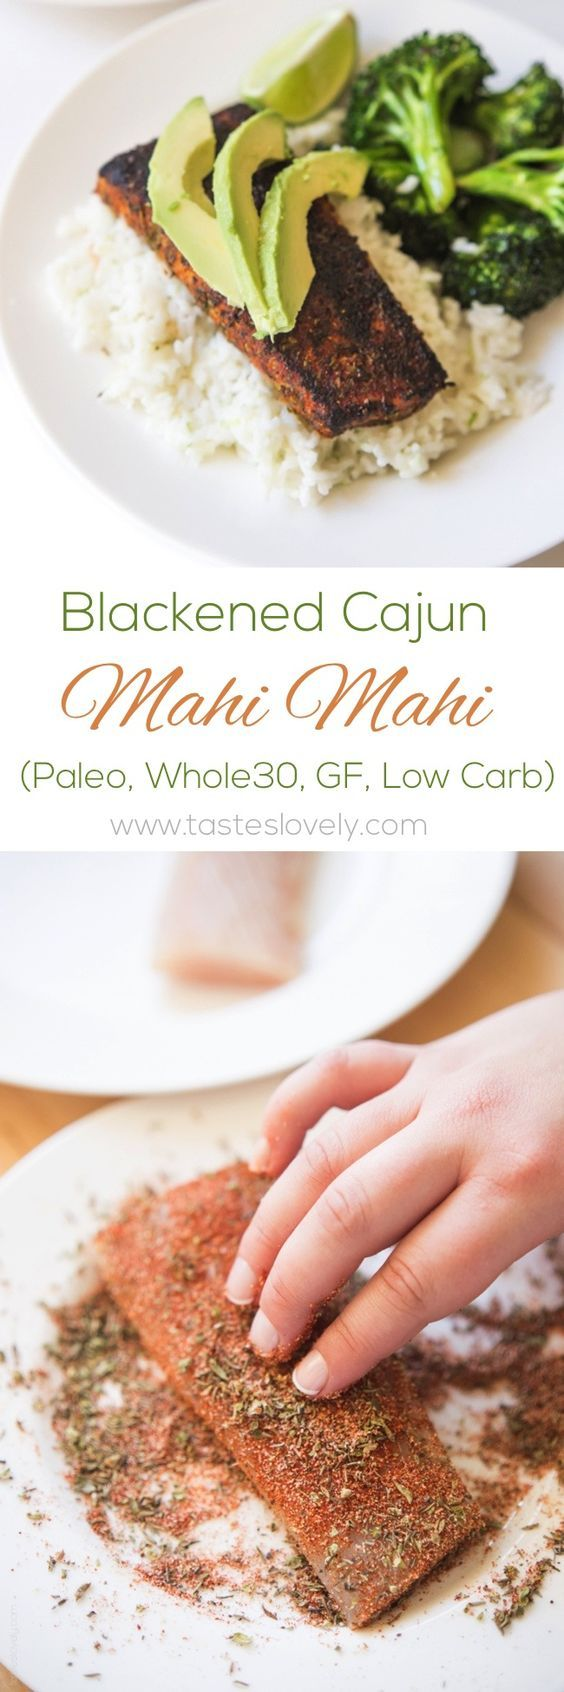 Paleo Blackened Cajun Mahi Mahi is FULL of flavor yet light and healthy…